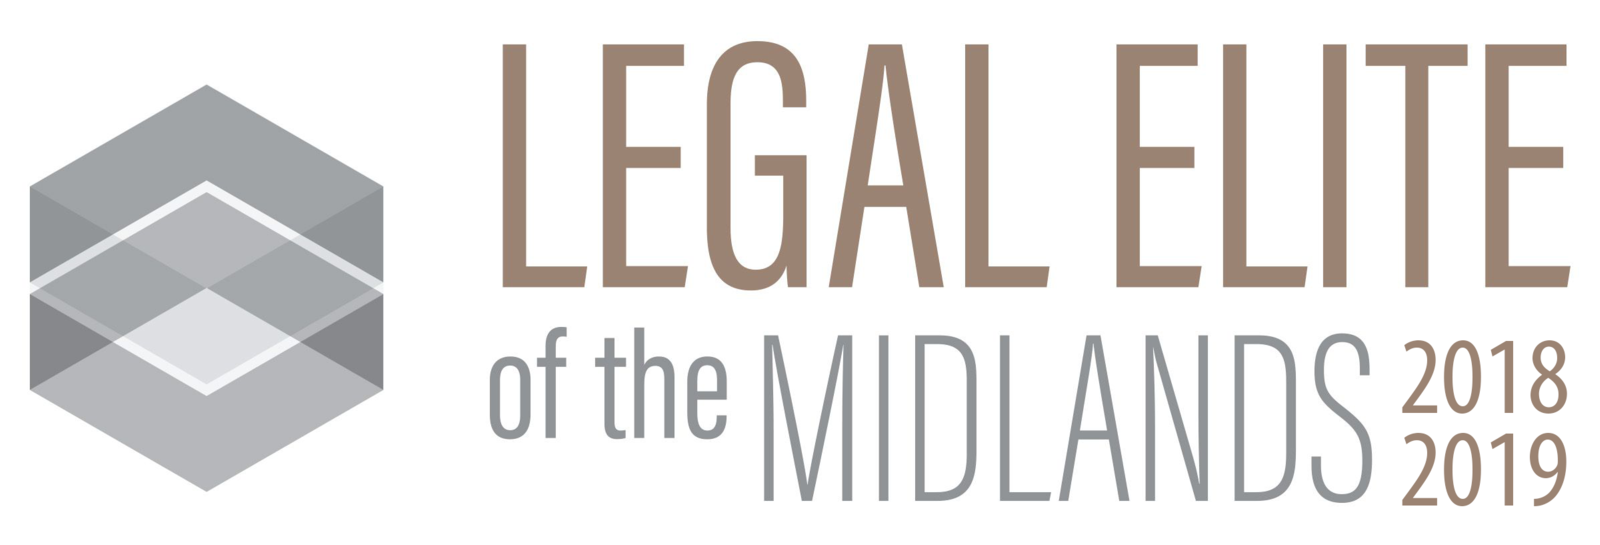 2018 2019 Legal Elite of the Midlands